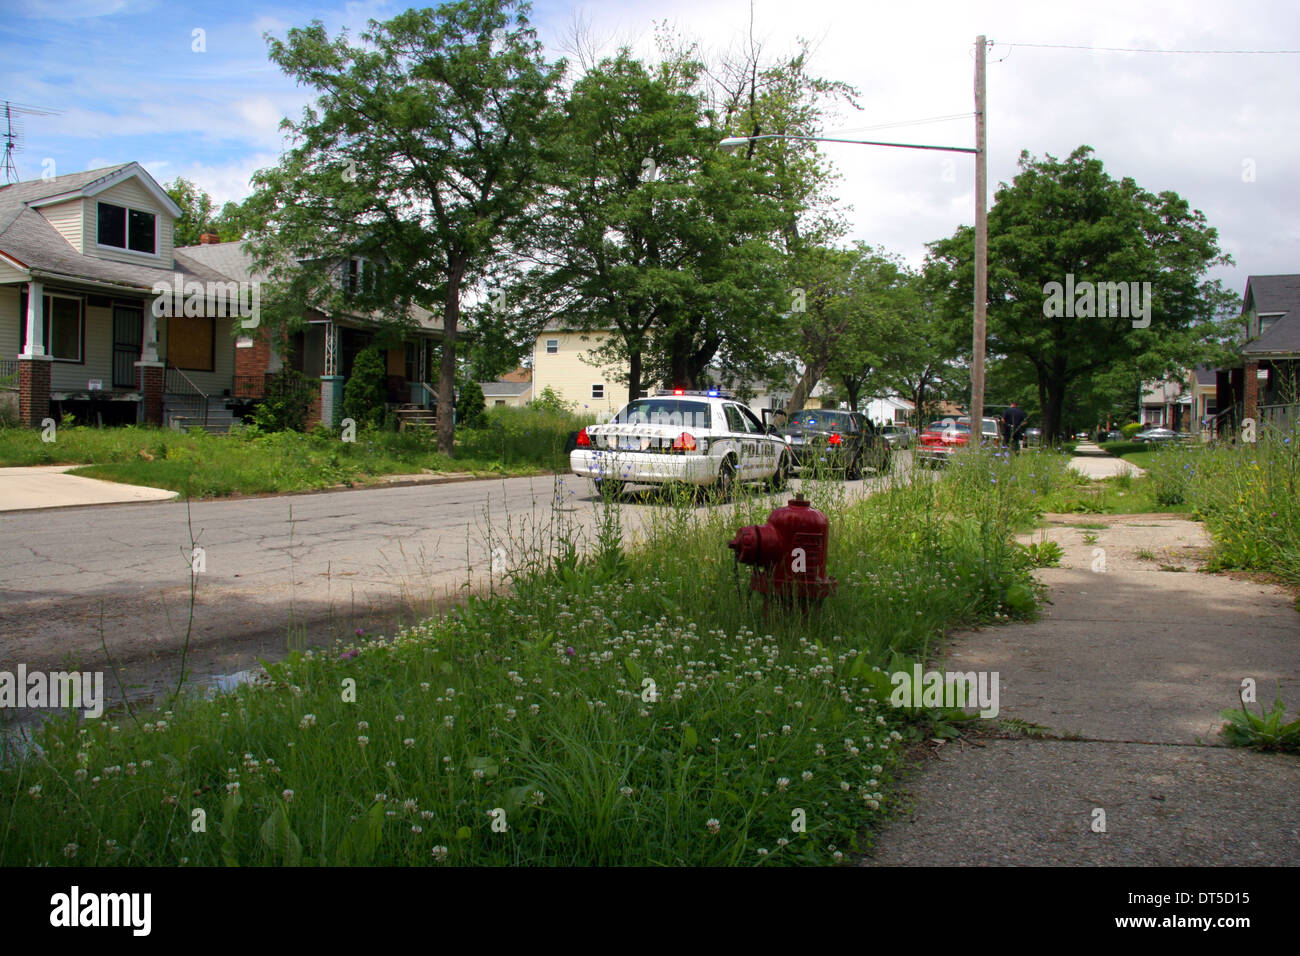 Grosse Pointe Park police department cars in an overgrown Detroit street, Michigan, USA. - Stock Image